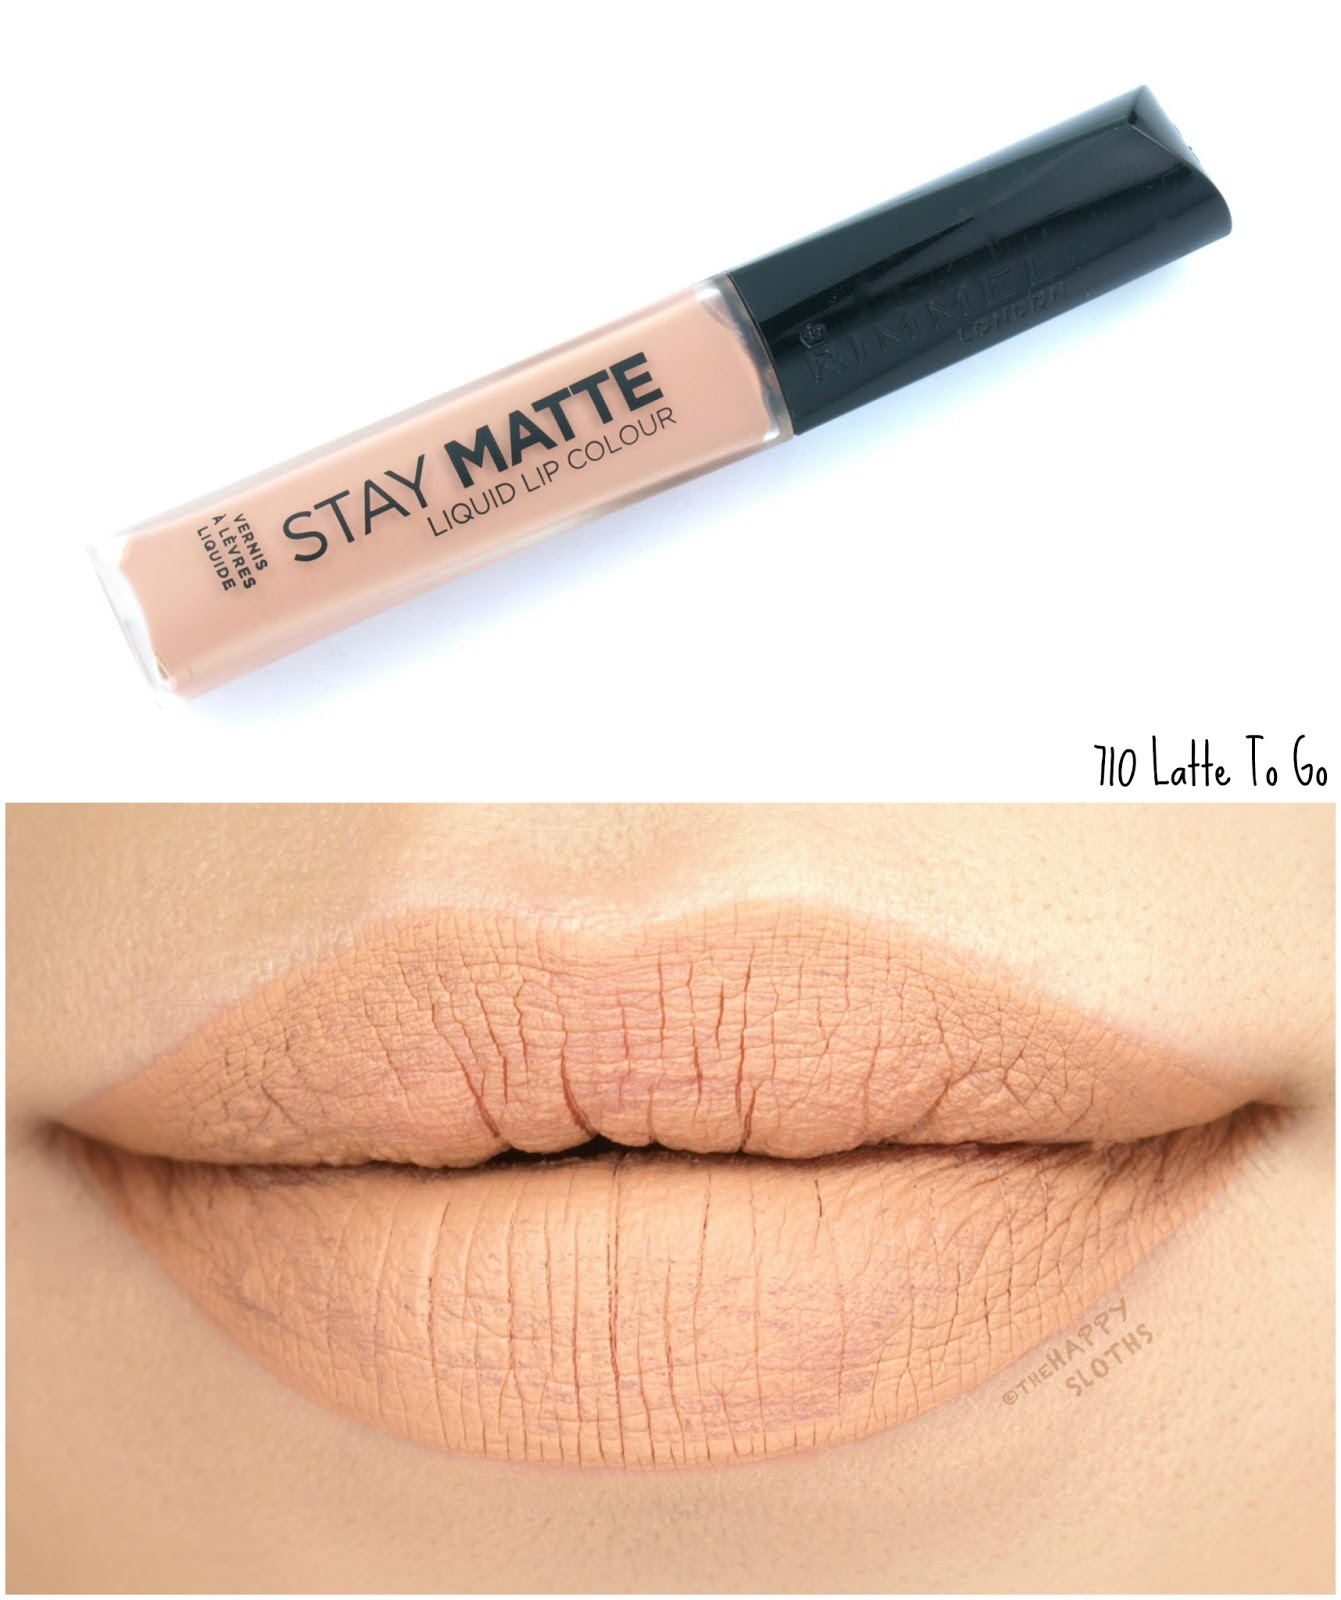 Rimmel London Stay Matte Liquid Lip Colour | 710 Latte To Go: Review and Swatches